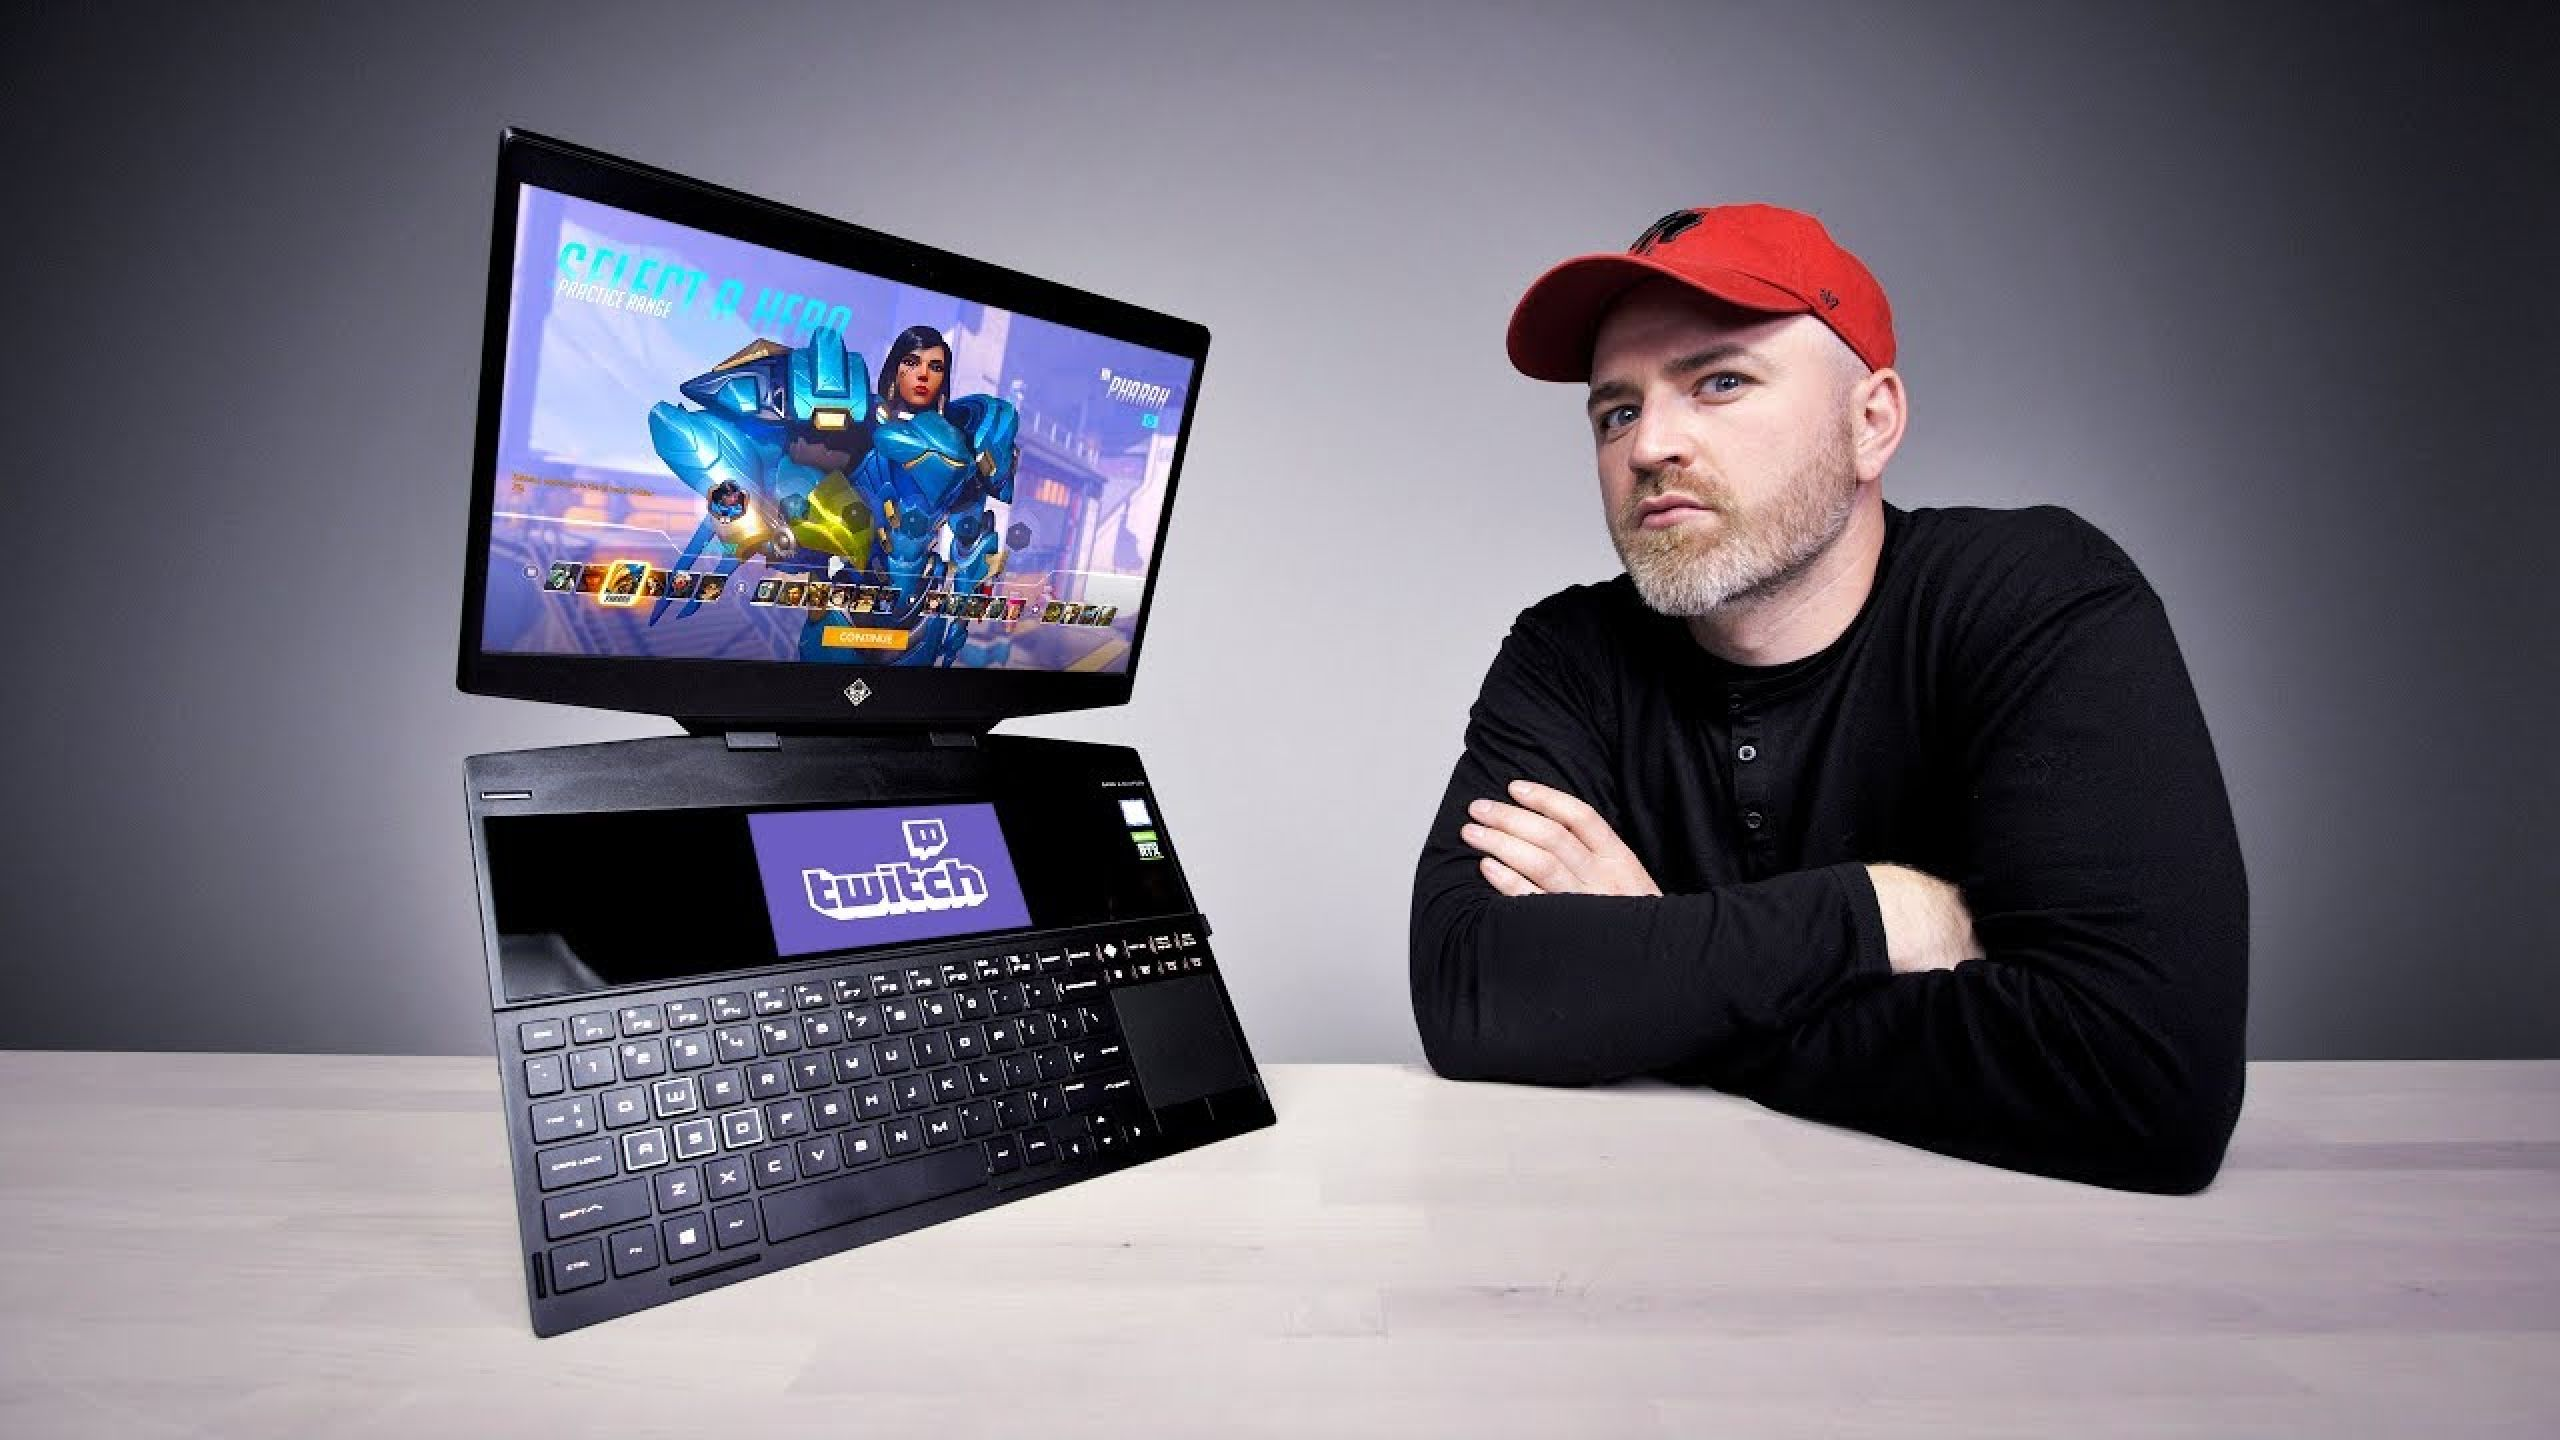 The World's First Dual-Screen Gaming Laptop: Clothes